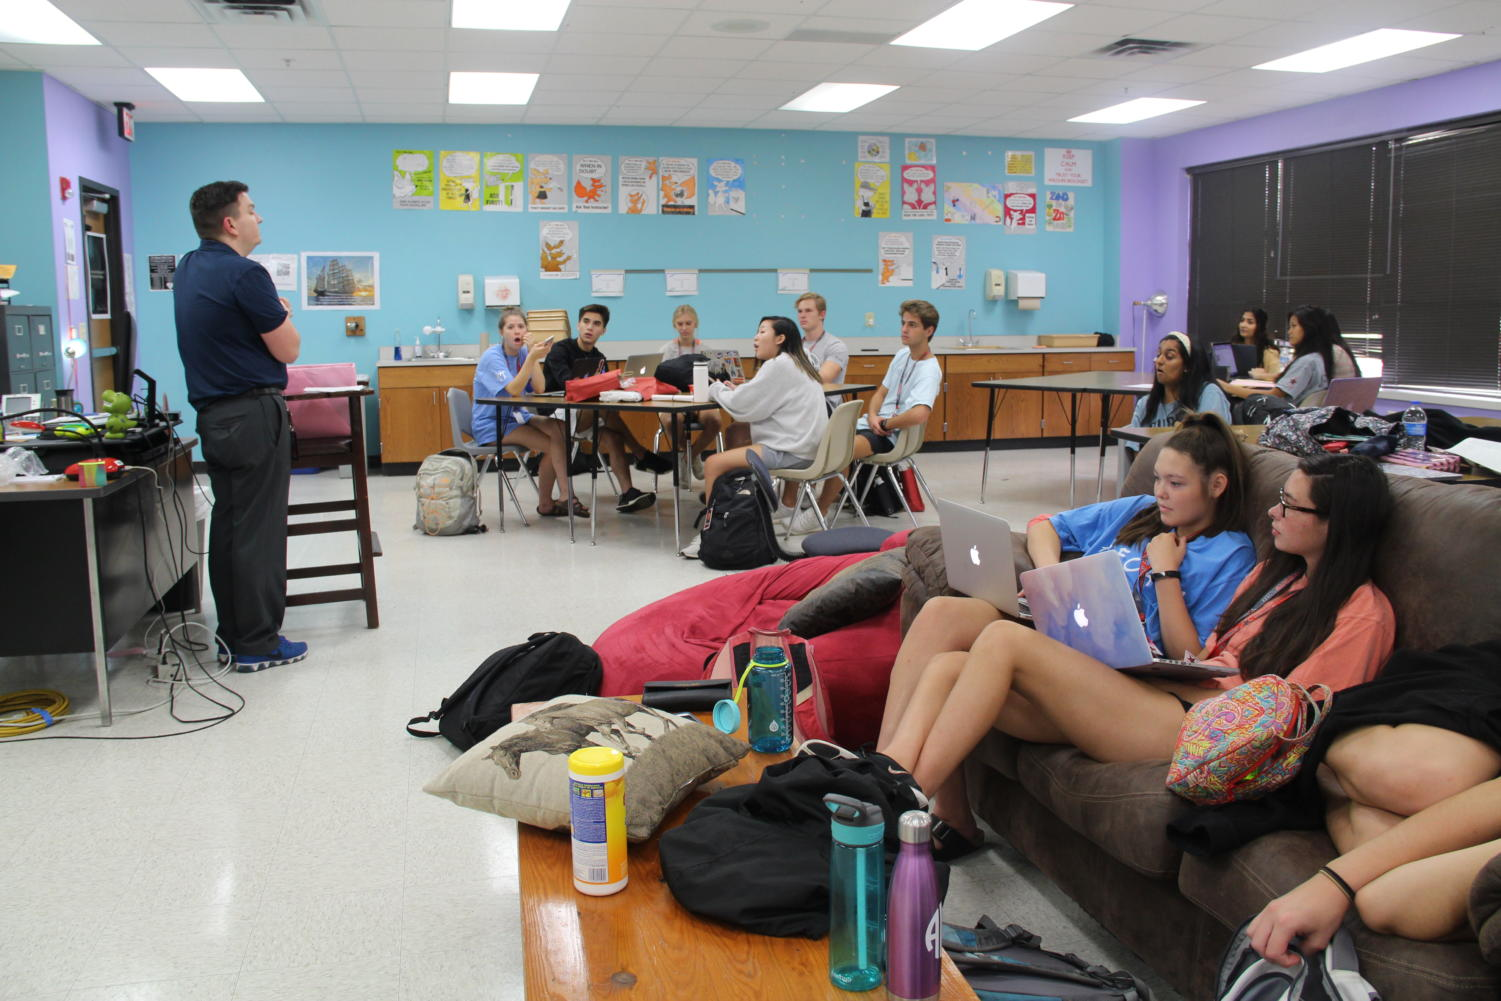 During seventh period, student council adviser Jonathan Denton discusses upcoming plans for student Council. Student councils members are preparing for homecoming and upcoming by taking notes and listening to Mr. Denton.